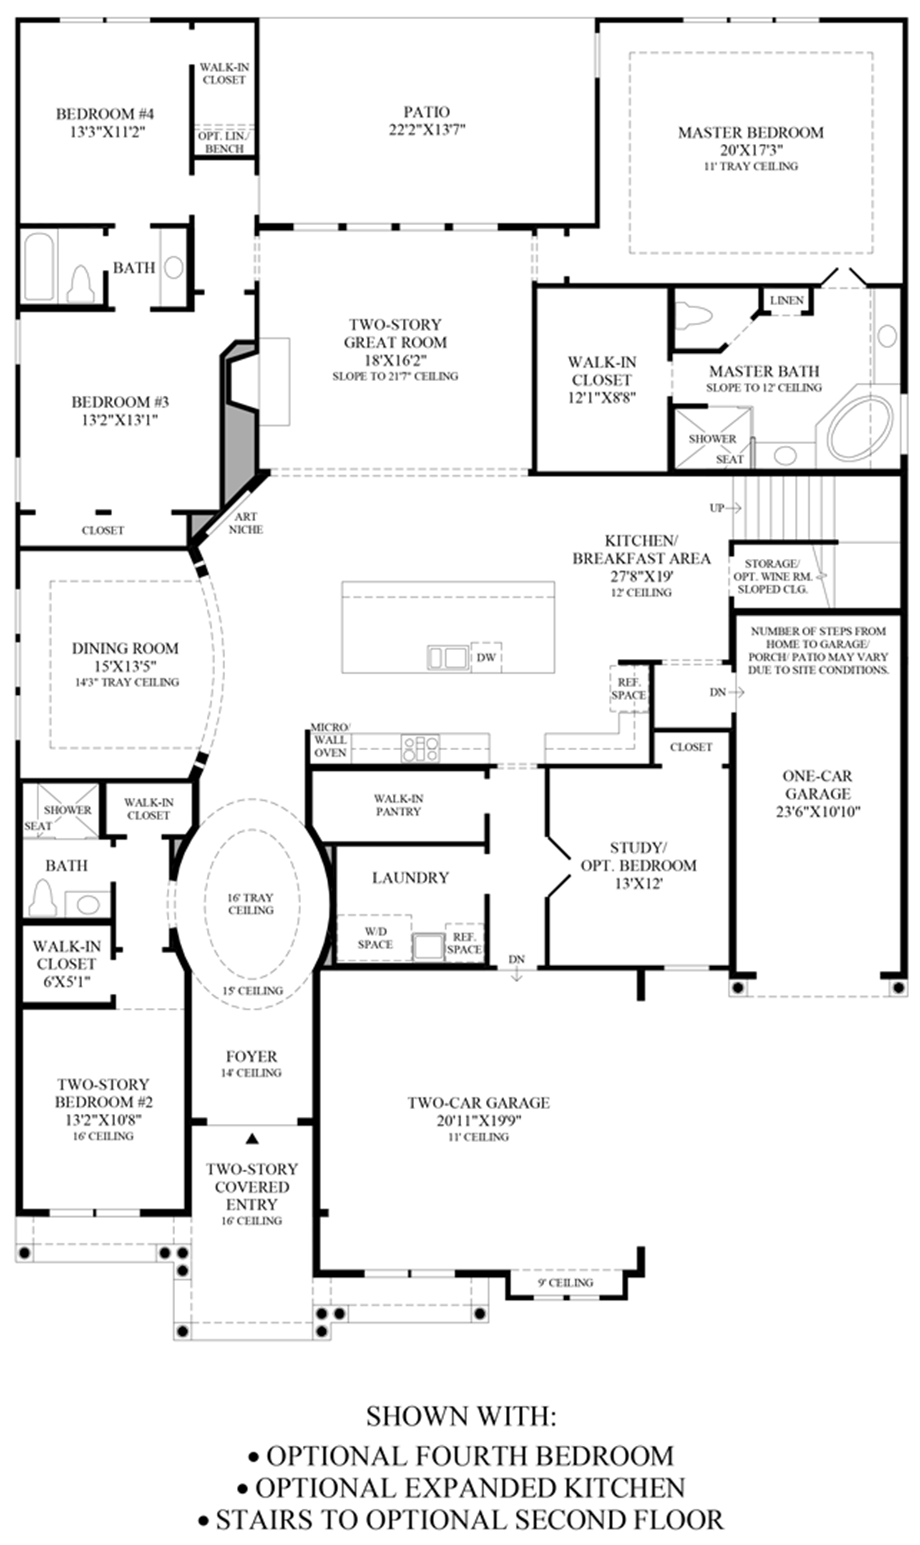 Optional 4th Bedroom/Expanded Kitchen/Stairs Floor Plan